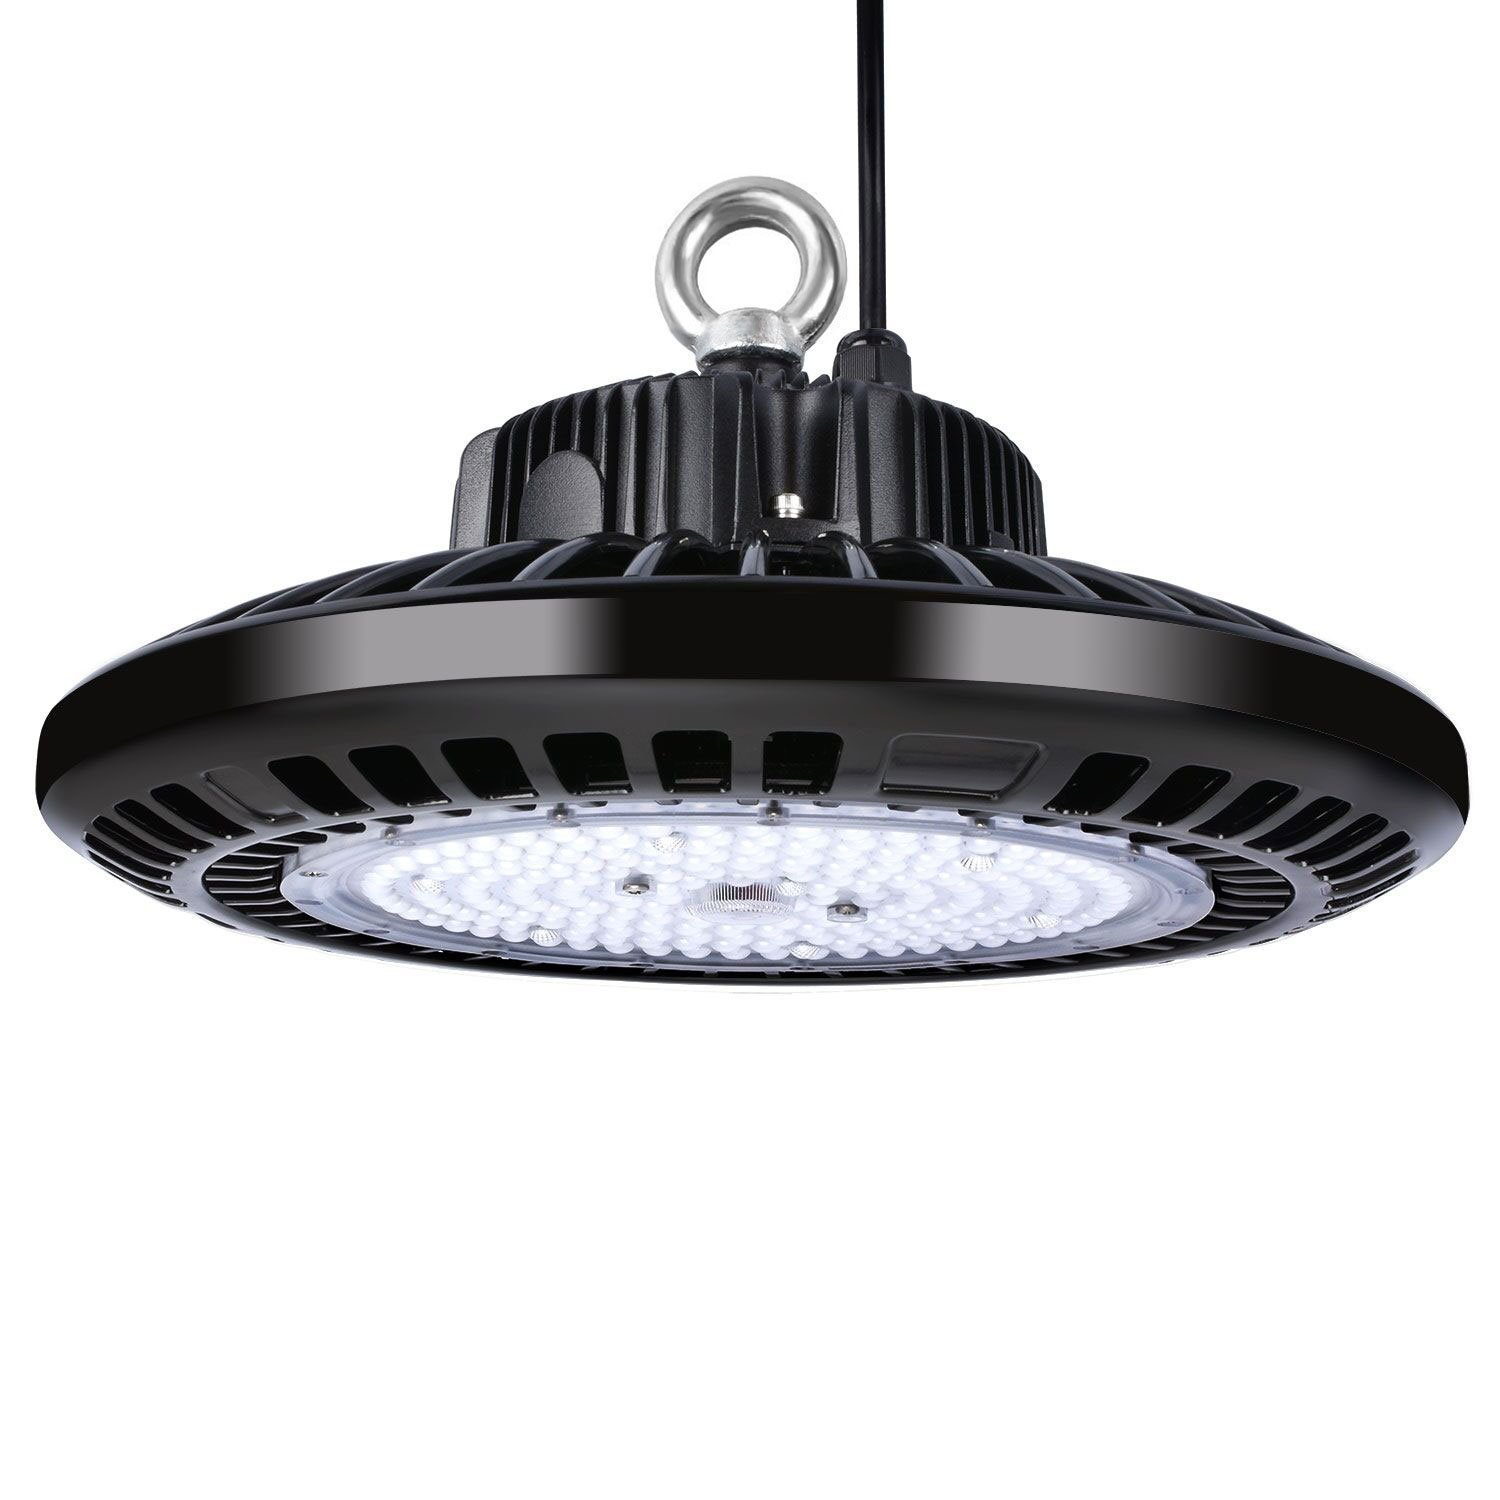 LUMIEREHOLIC 200W UFO LED High Bay Light, Replacement for 800W HID/HPS Bulb, Daylight White SMD 3030, LED Warehouse Barn Gym Garage Commercial Shopping Mall Lighting 5000K by Lumiereholic